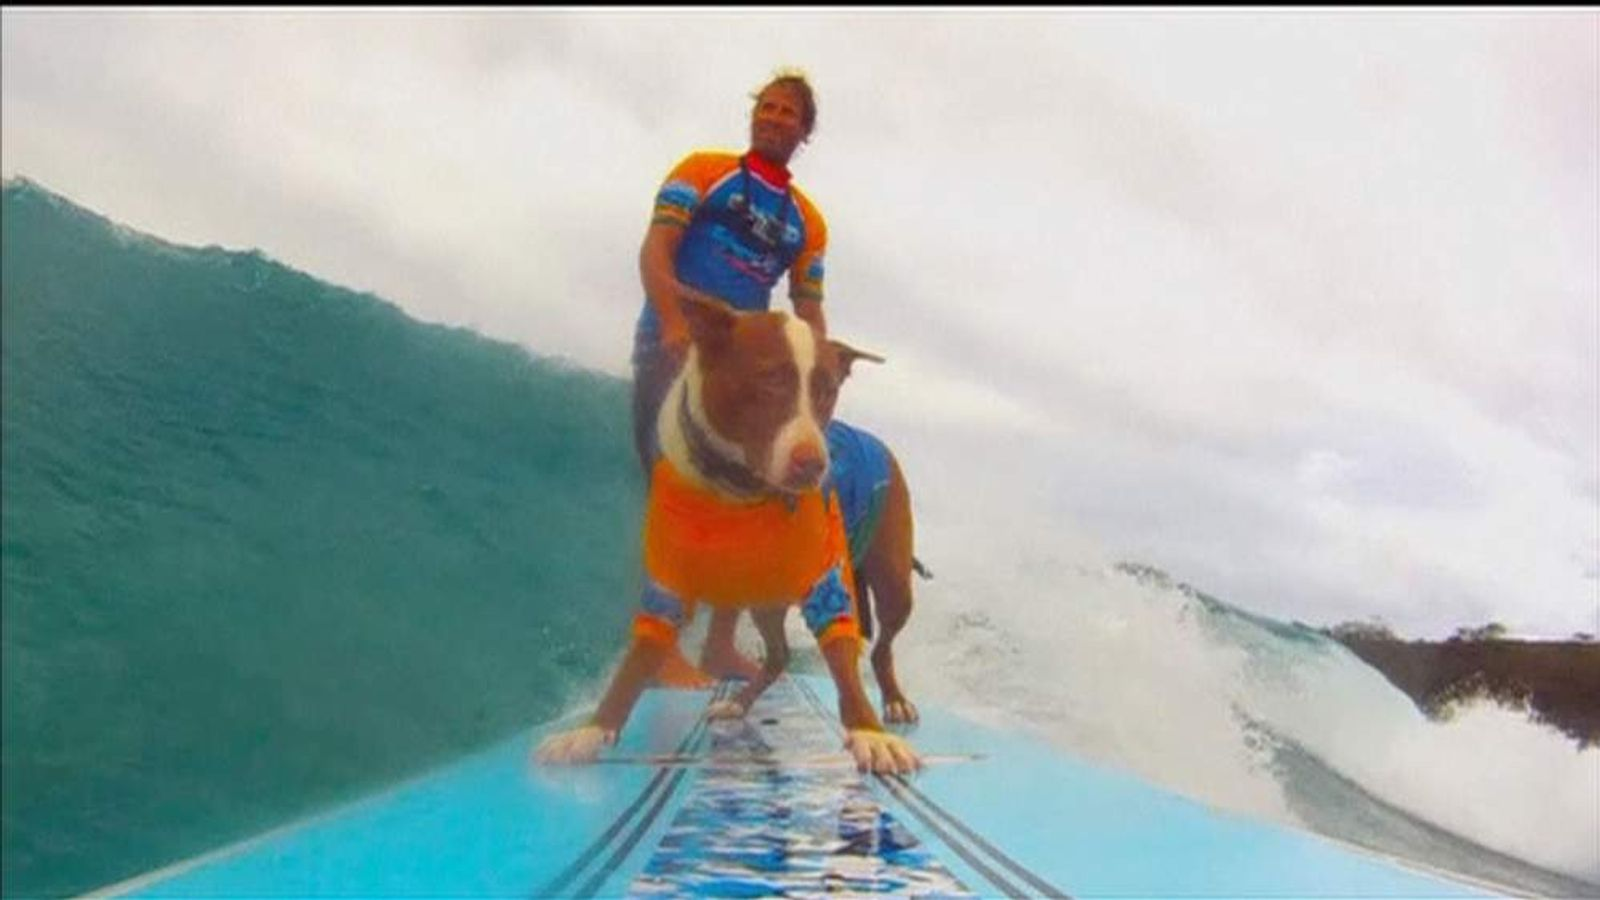 Longboarders and dogs take to the waves at the Noosa Surf Festival